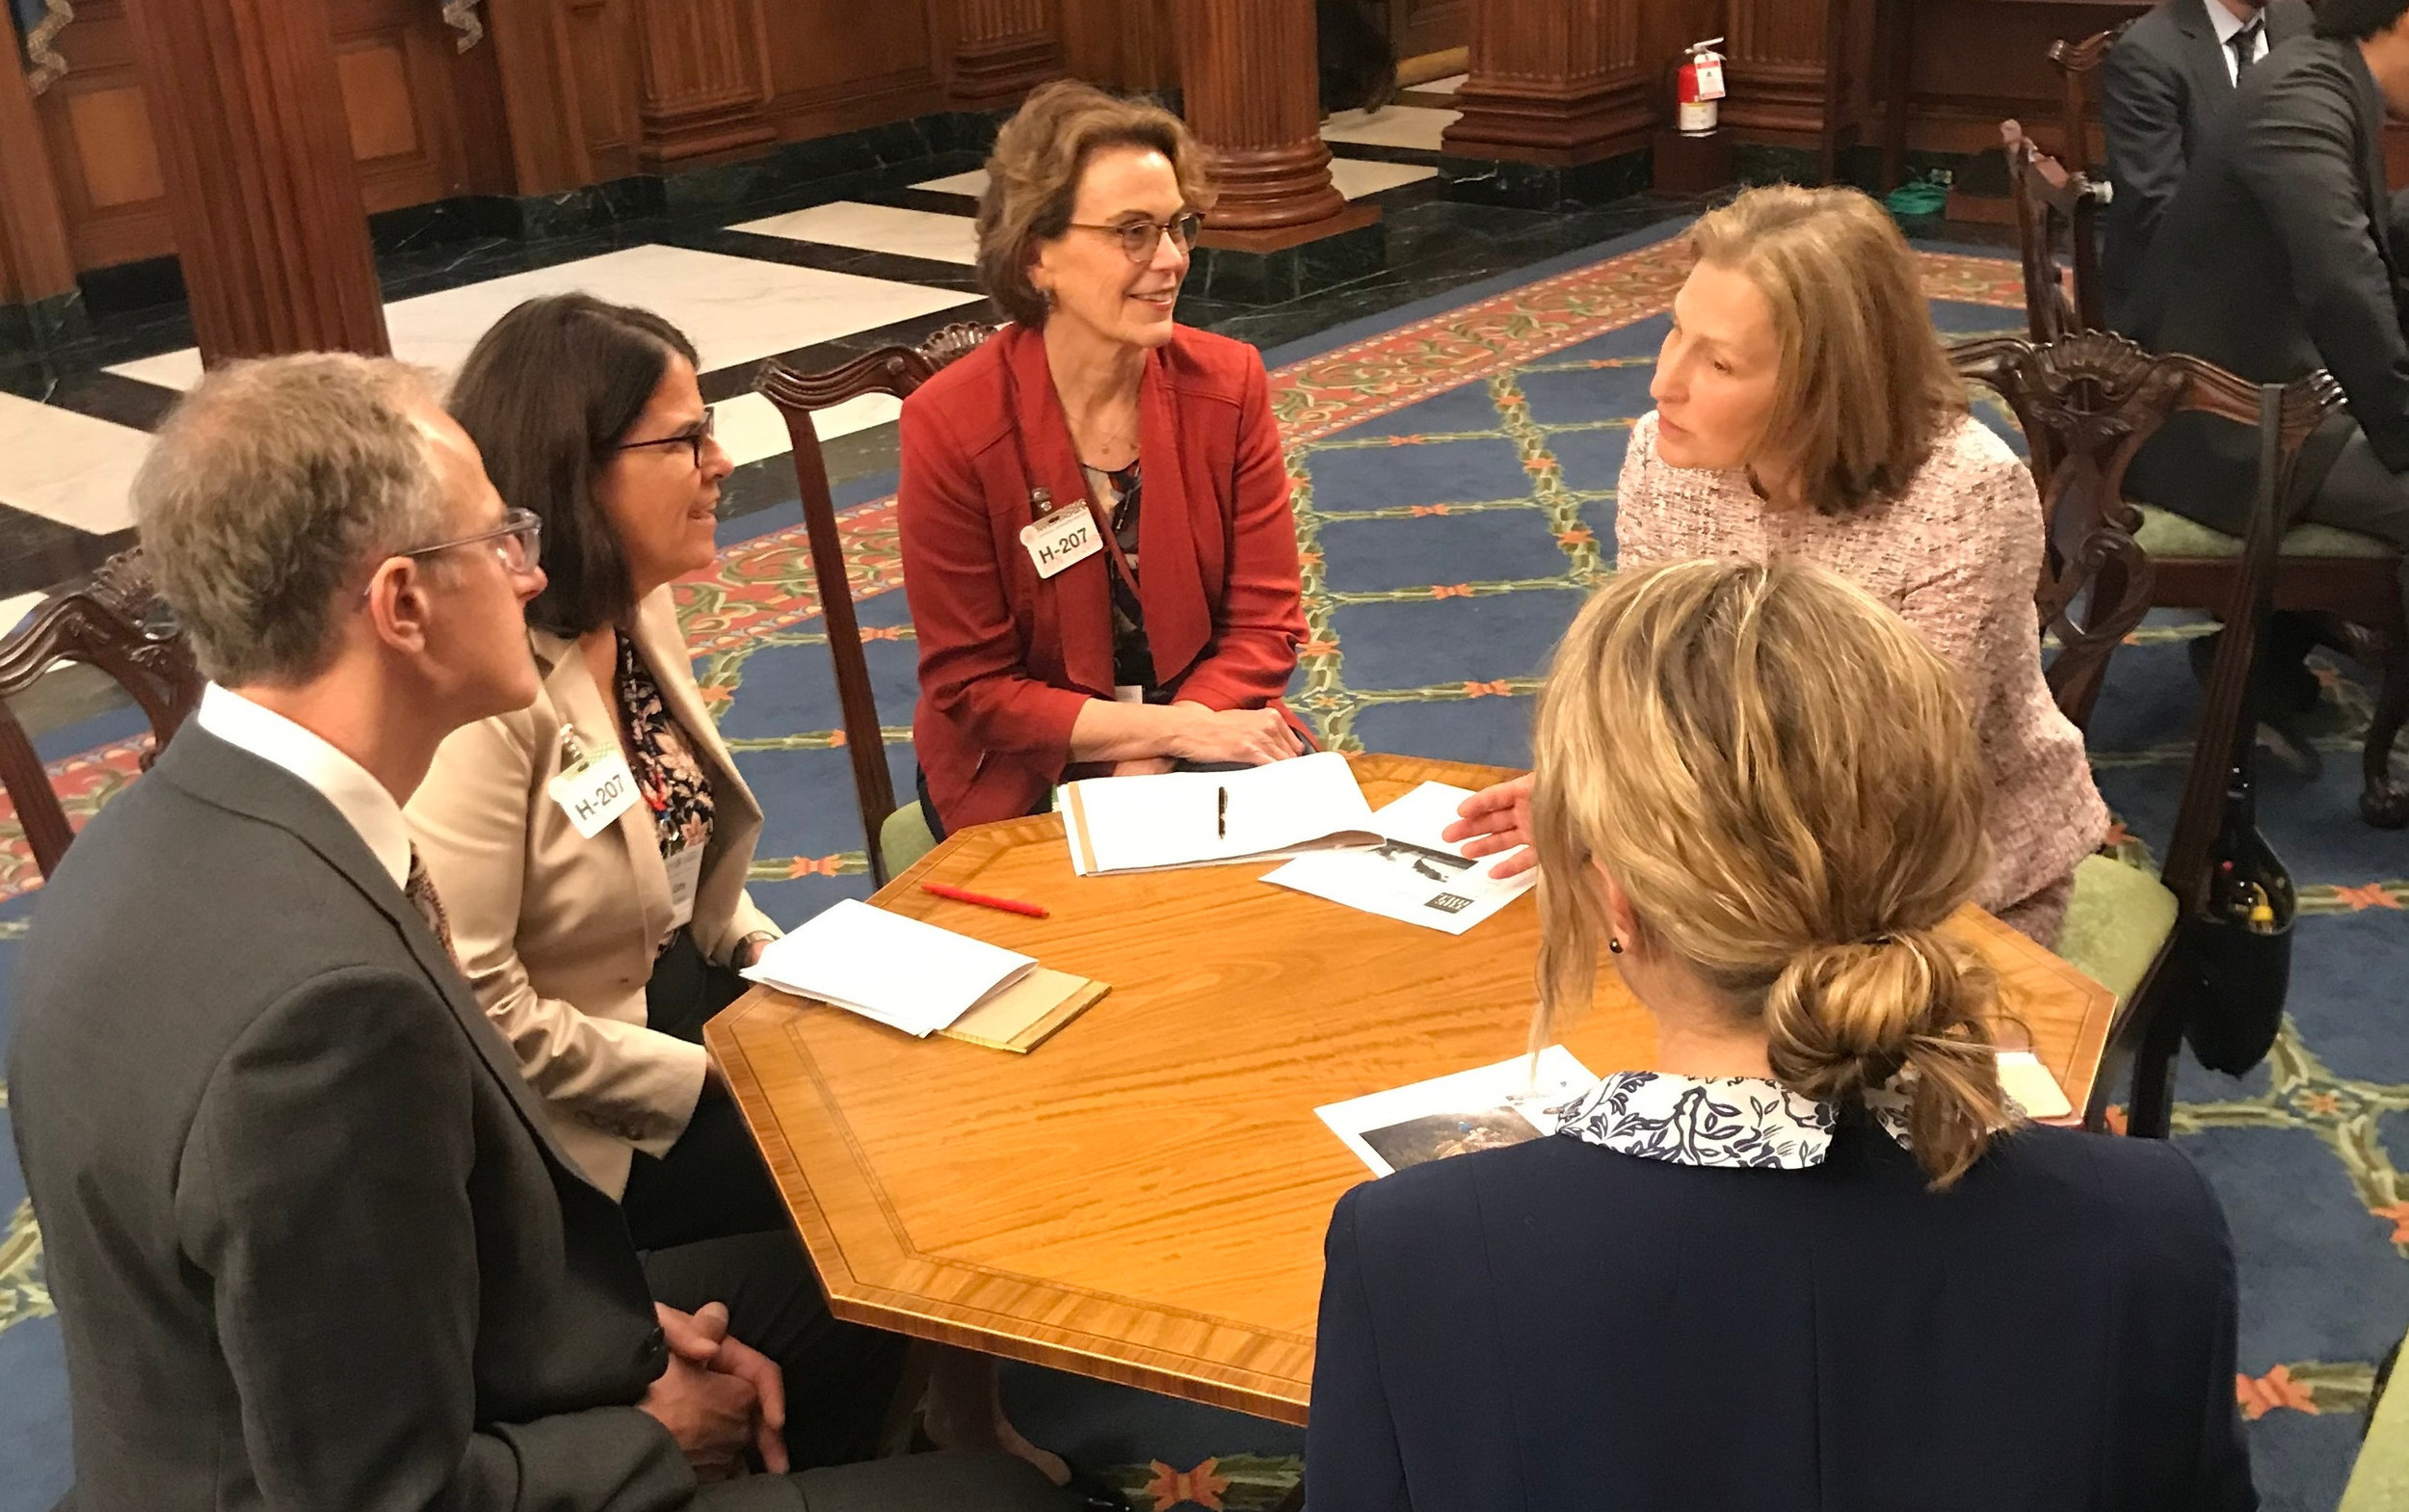 Congresswoman Kim Schrier spoke with us about forest health, climate change and investing in nature-based solutions to environmental challenges. Photo by Alicia Bissonnette.